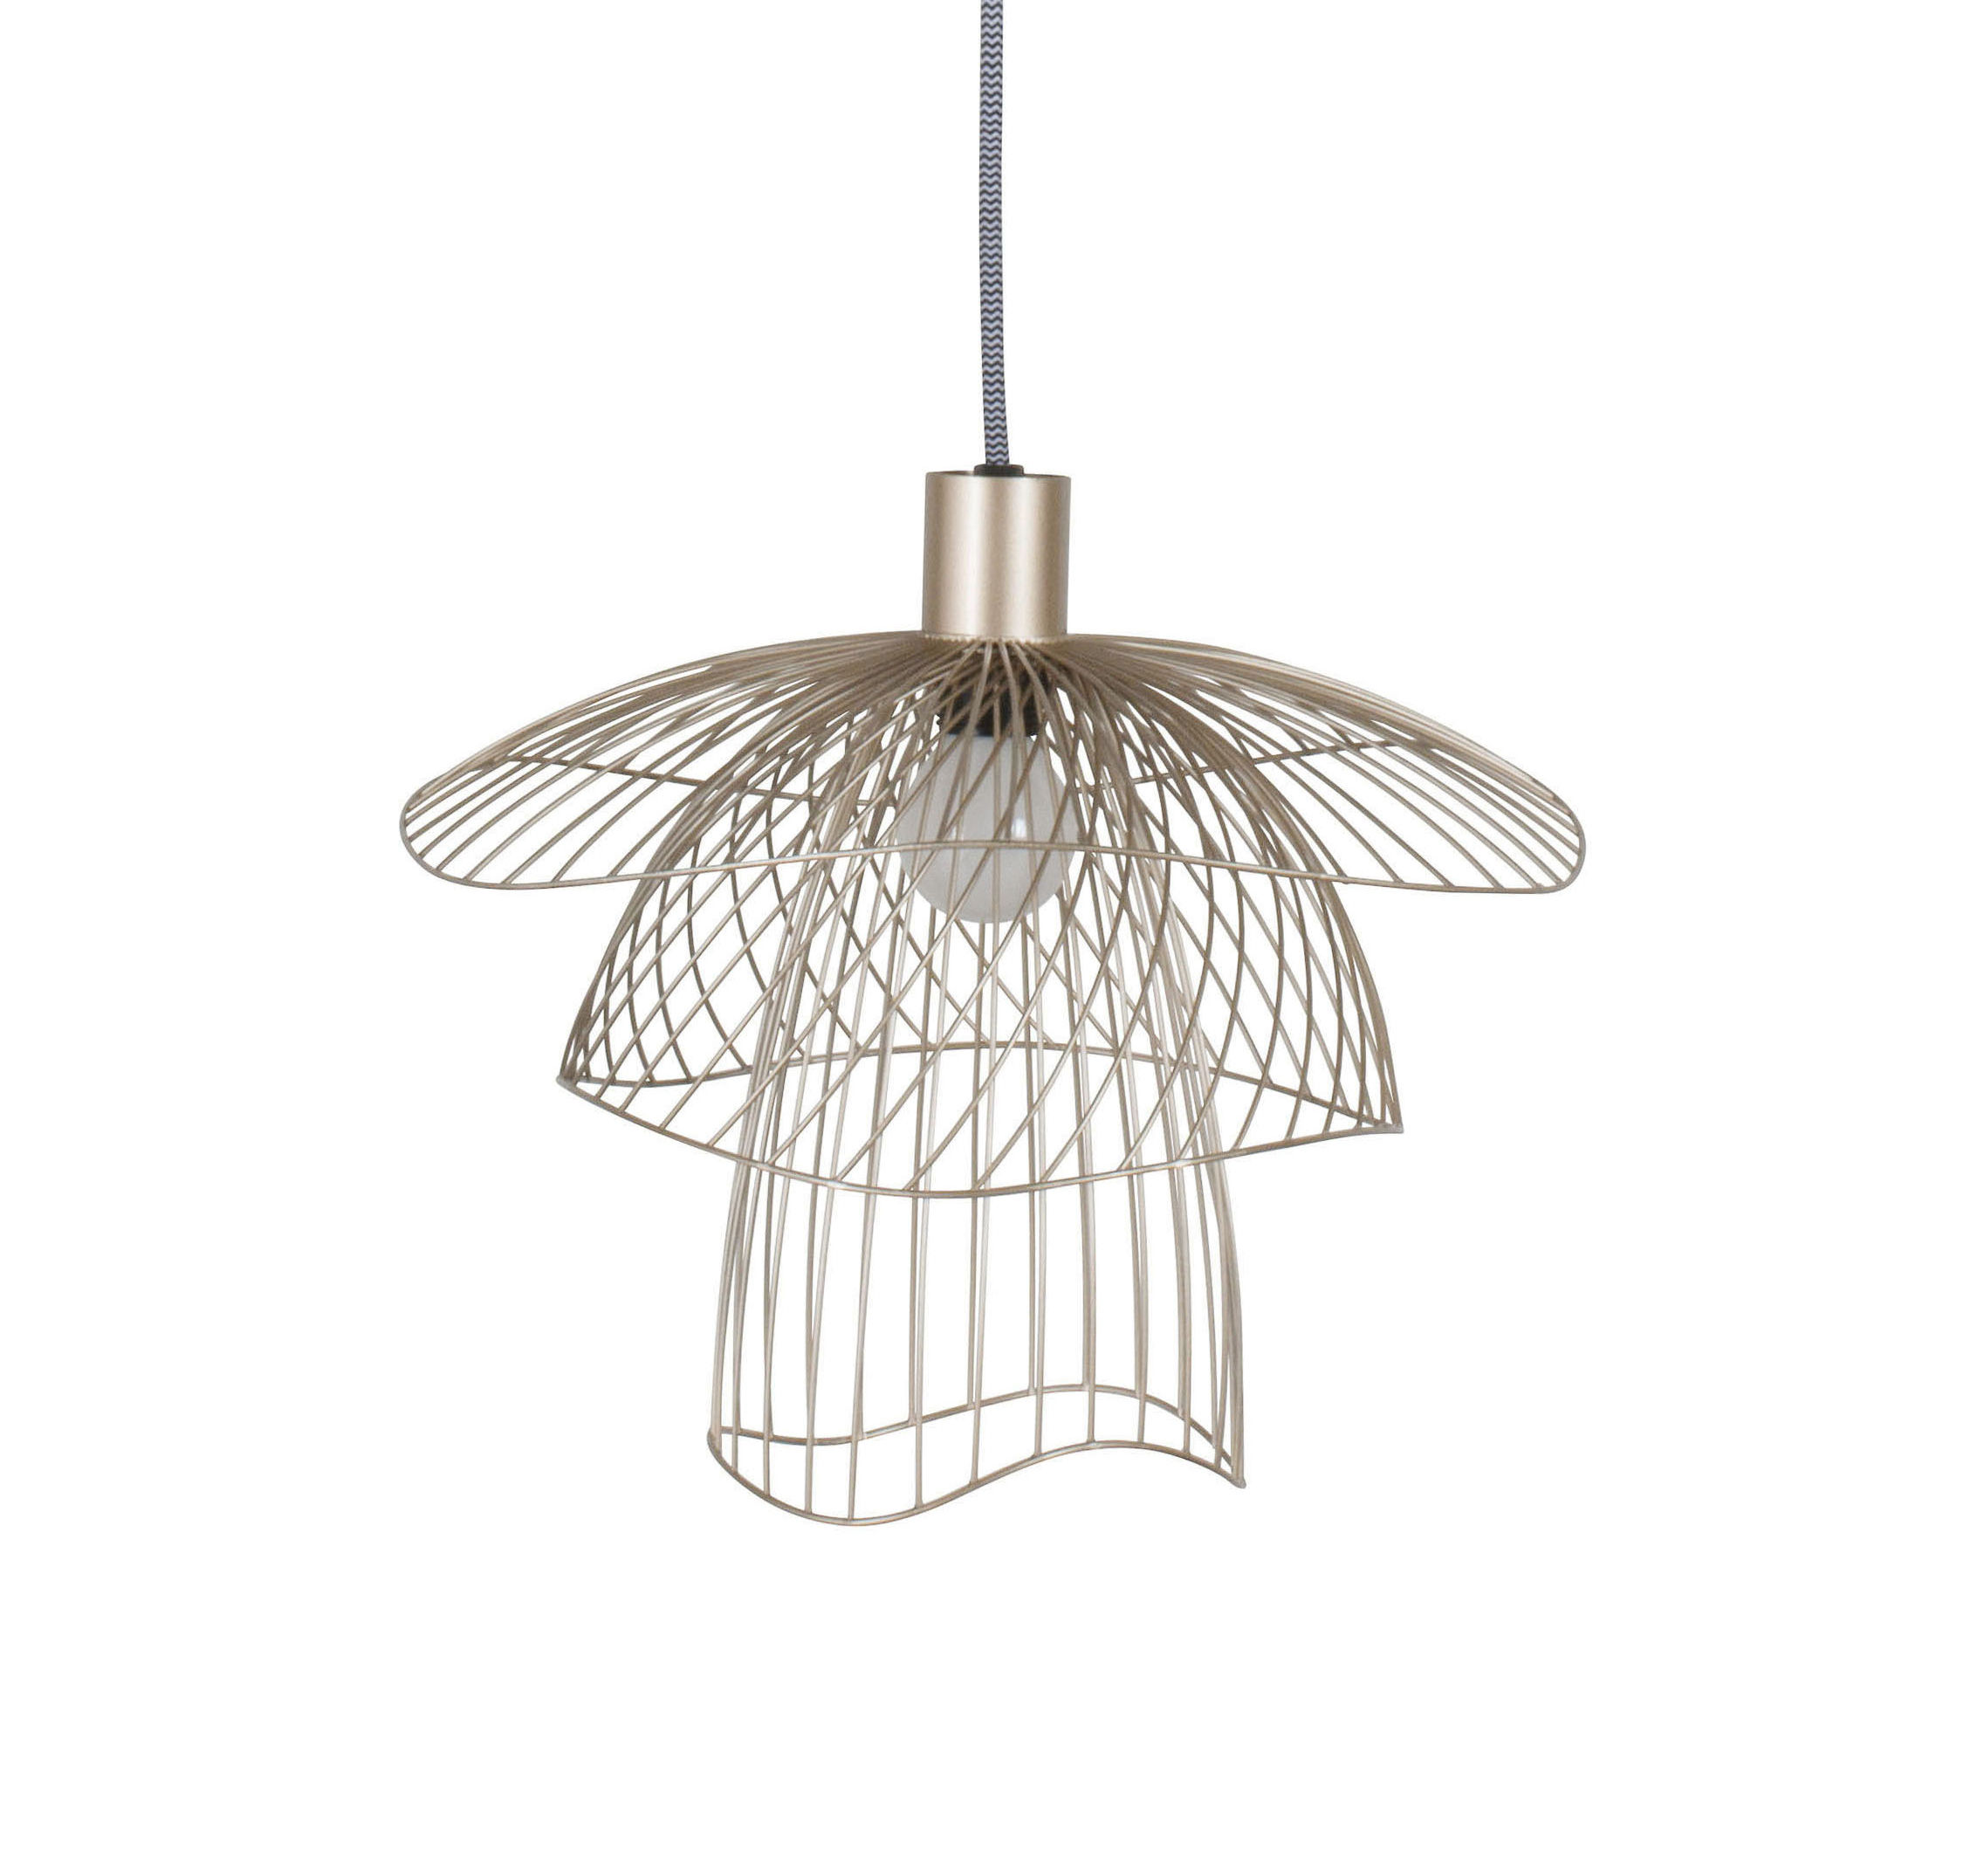 Lighting - Pendant Lighting - Papillon XS Pendant - / Ø 35 cm by Forestier - Champagne - Powder coated steel